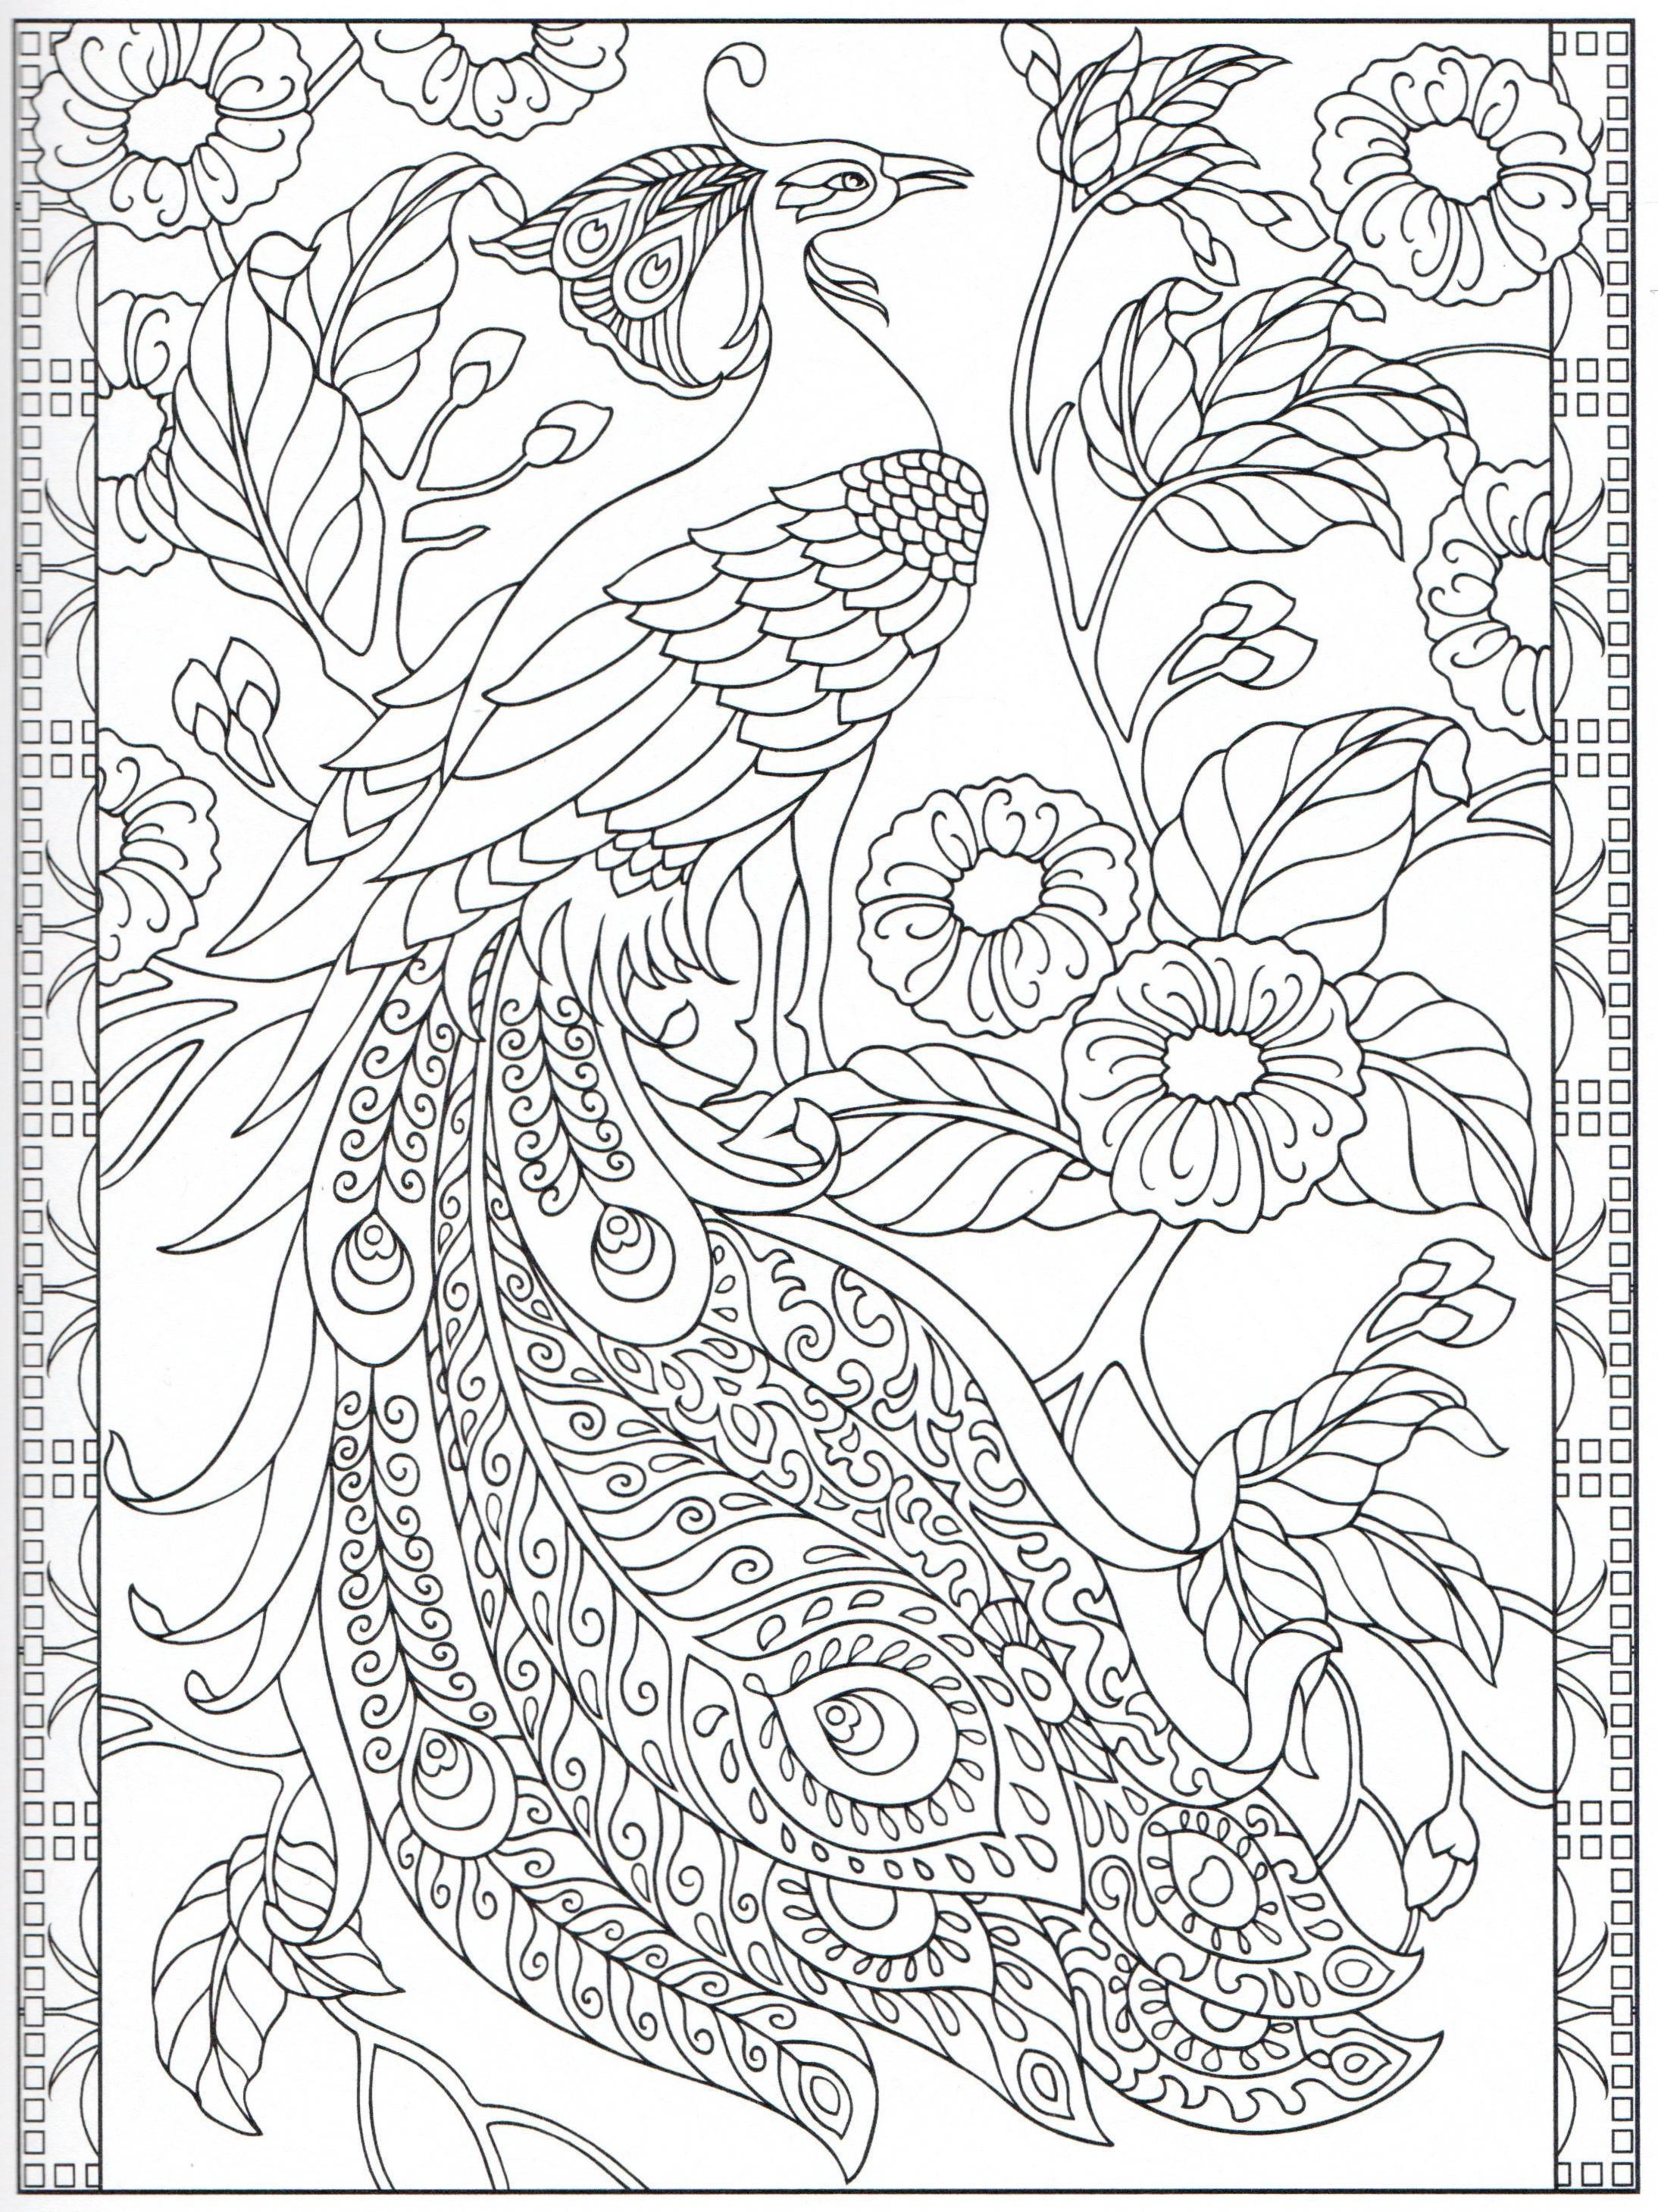 Peacock Coloring Page 24 31 With Images Steampunk Coloring